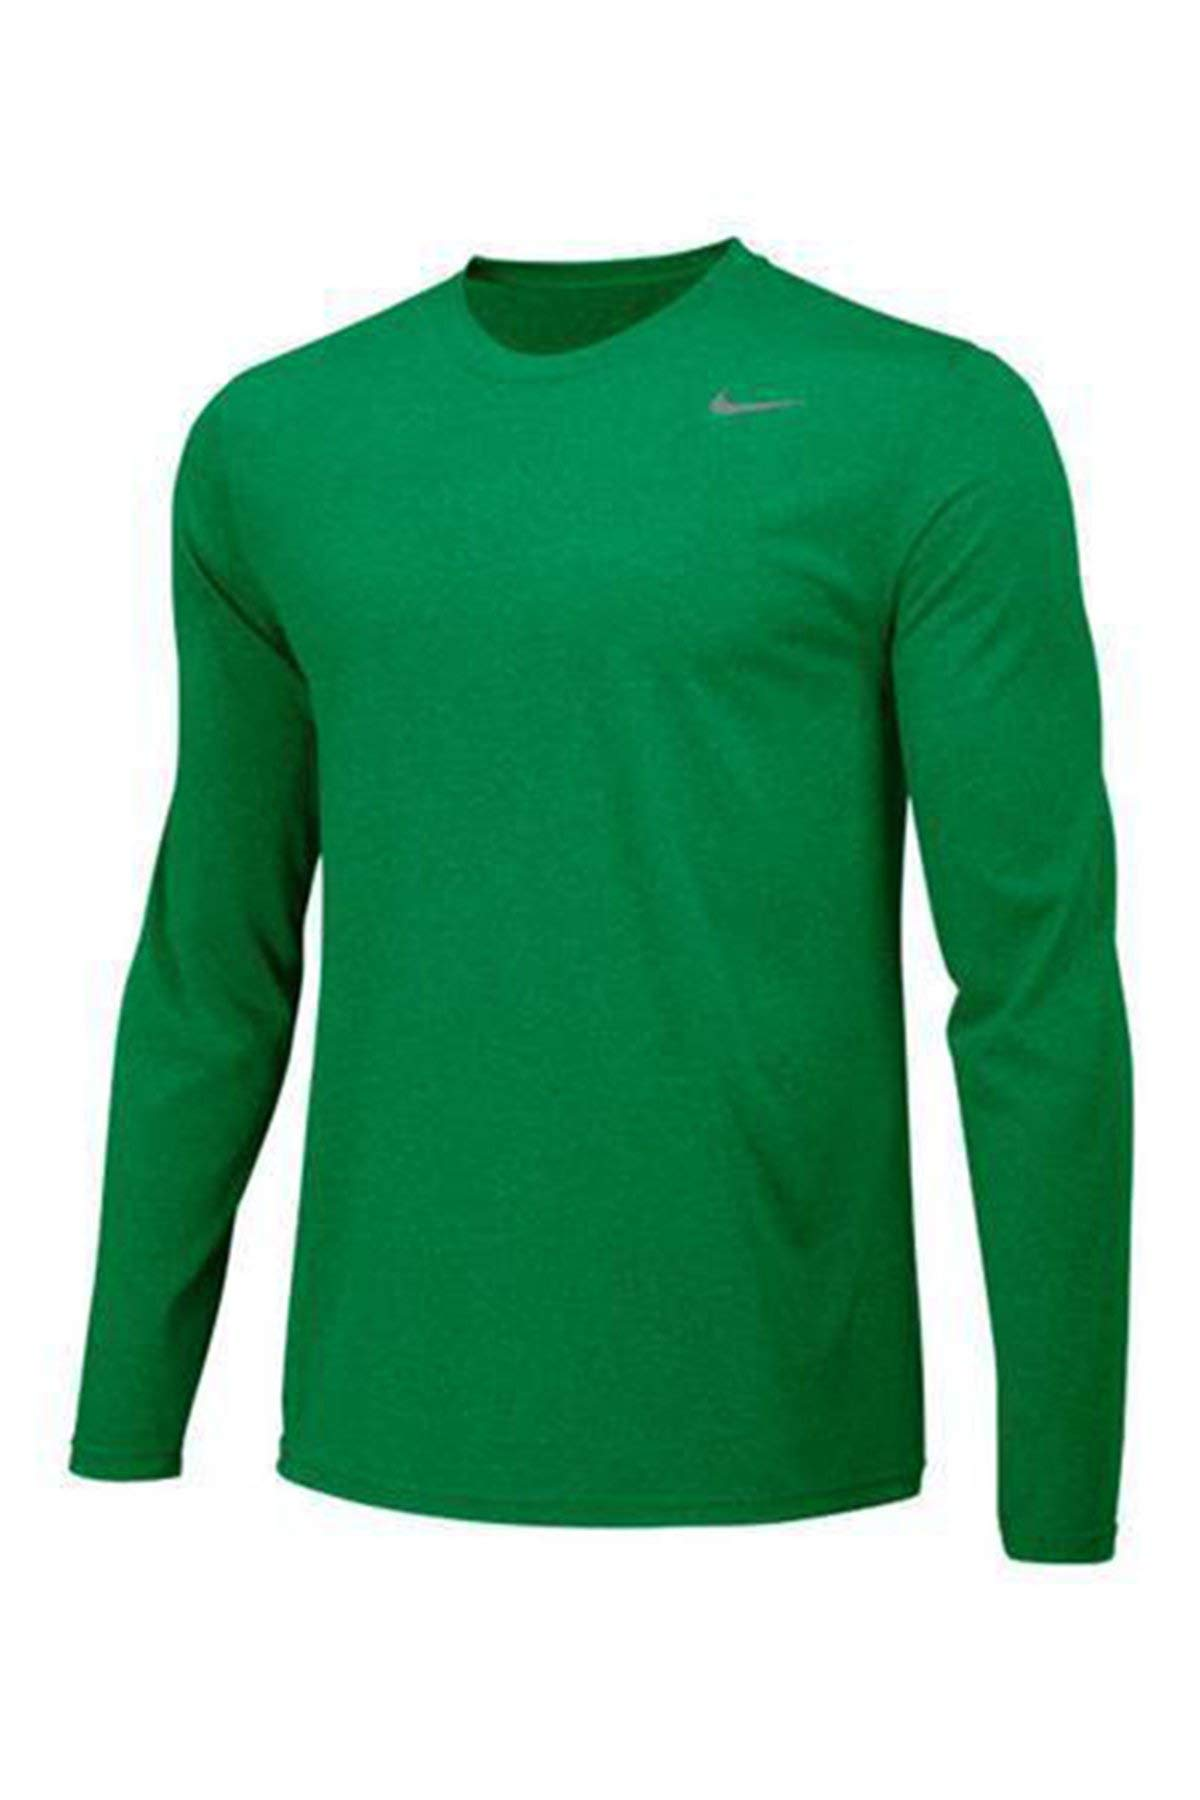 ff514d9bf880 Galleon - NIKE Men s Legend Long Sleeve Tee (Small